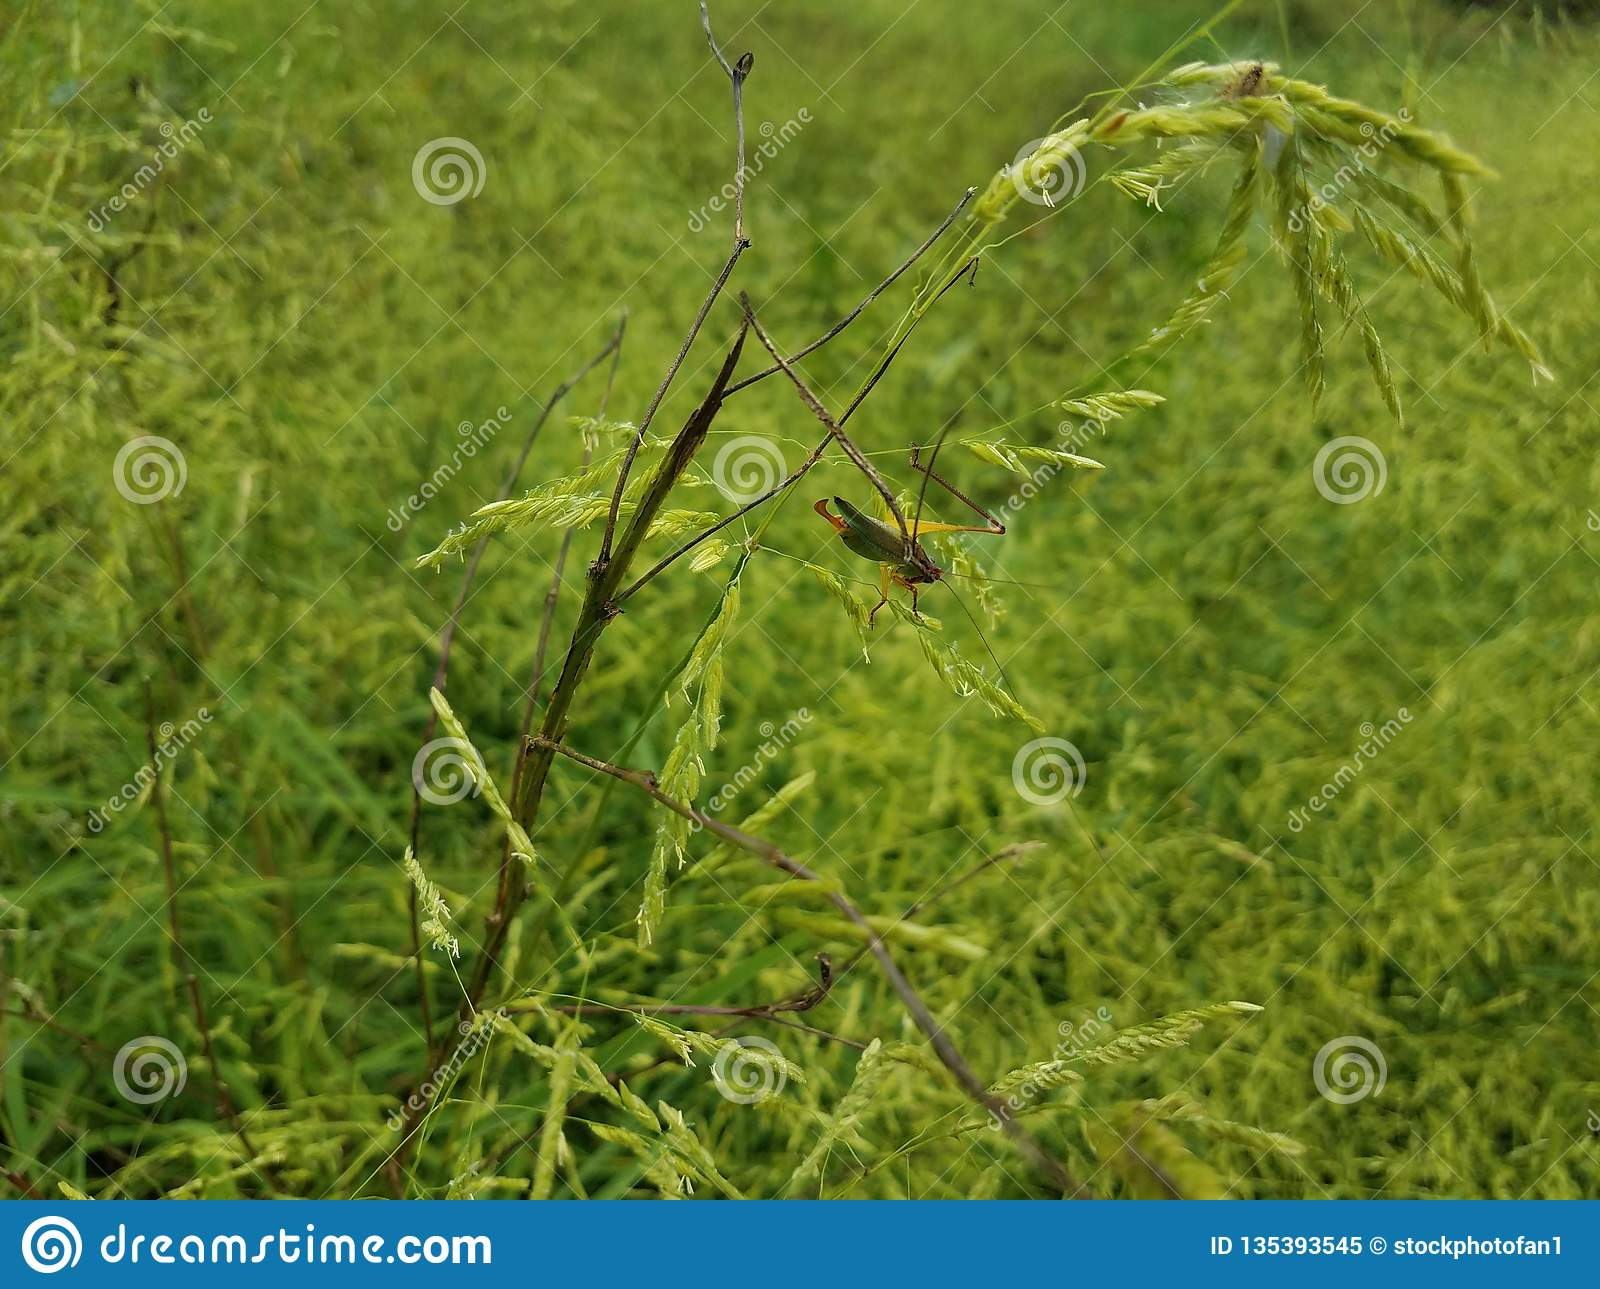 Grasshopper insect with antennae on green grass or plant